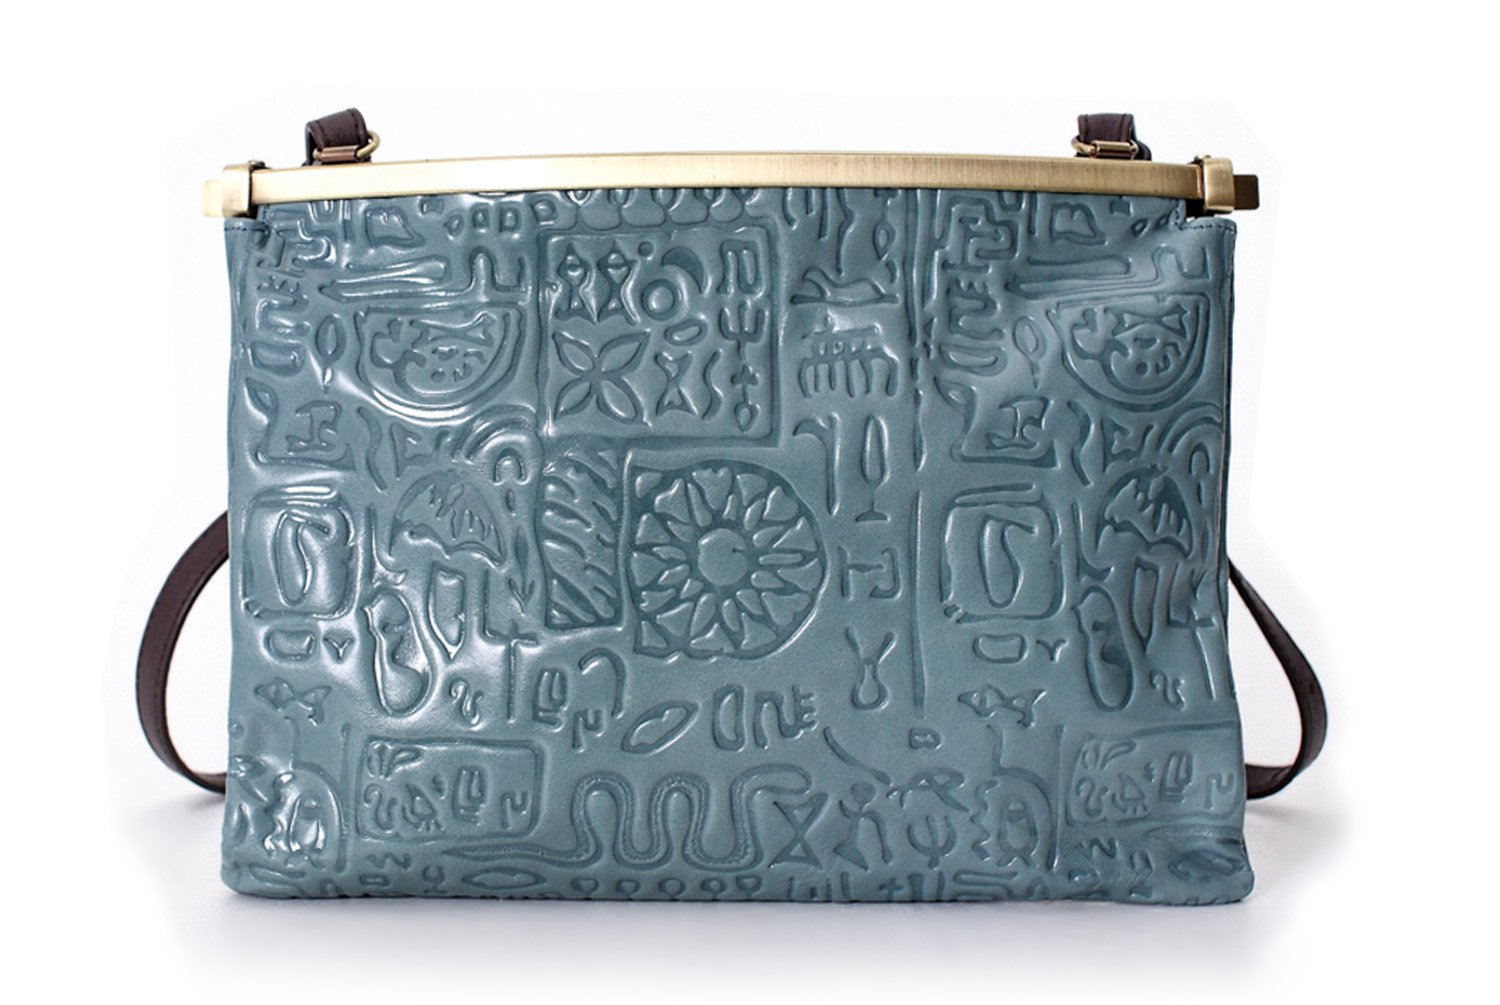 La Poet Women's Vintage Embossed Calfskin Leather Clip Closure Cross Body Frame Handbag (Smokey Blue)